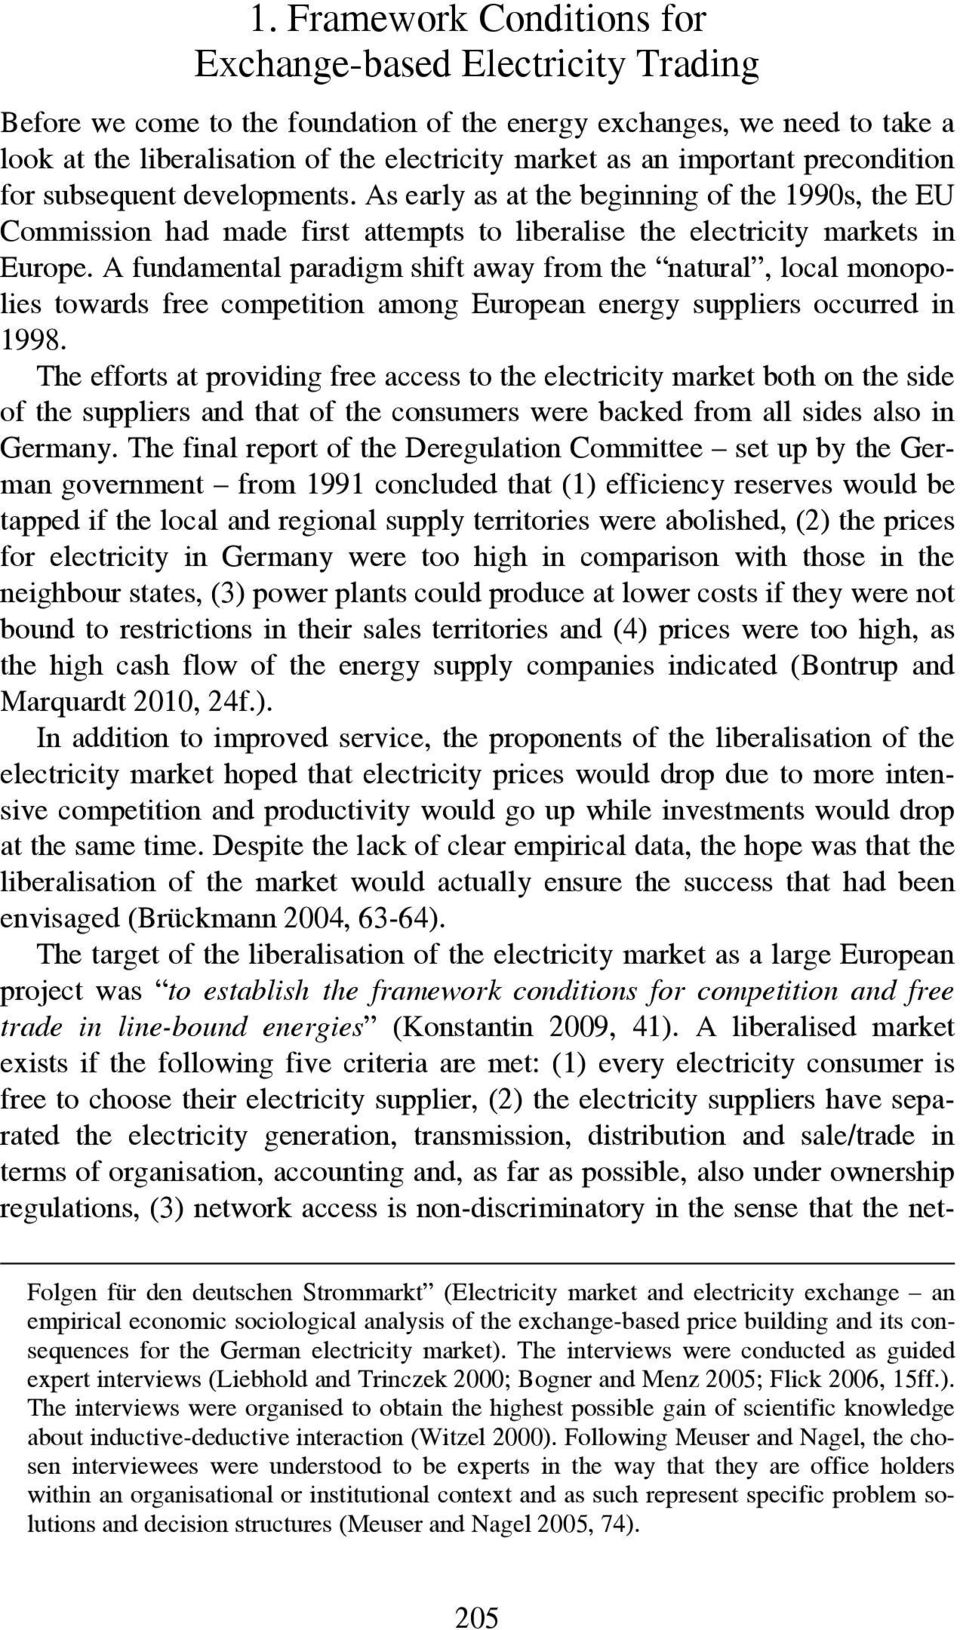 A fundamental paradigm shift away from the natural, local monopolies towards free competition among European energy suppliers occurred in 1998.